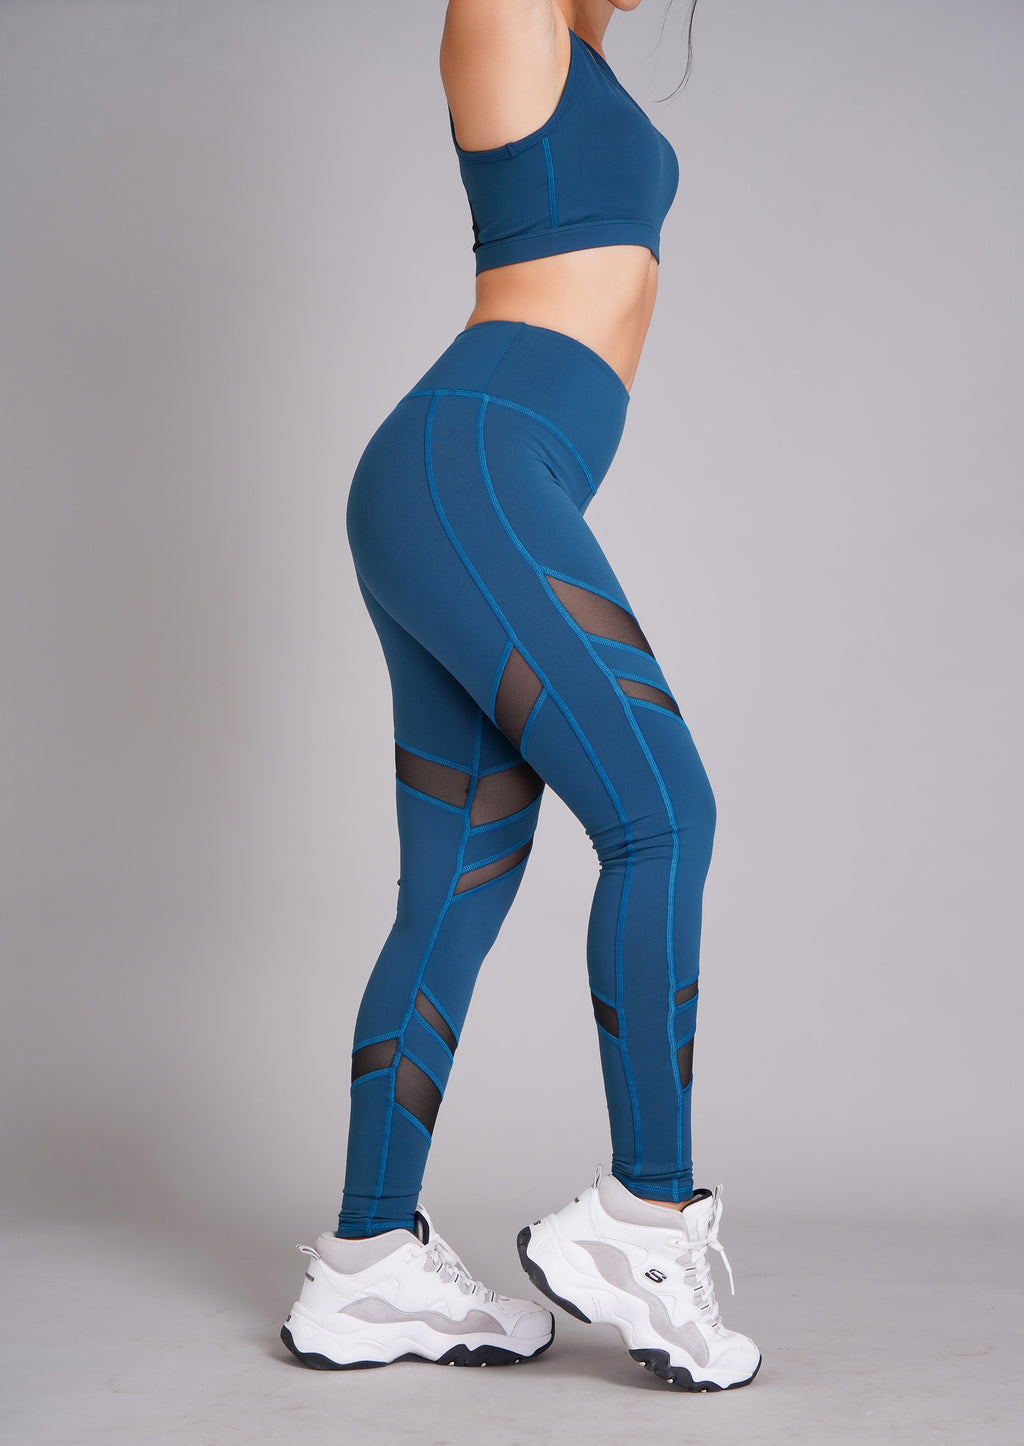 Pyramid High Waist Full Length Tight Blue